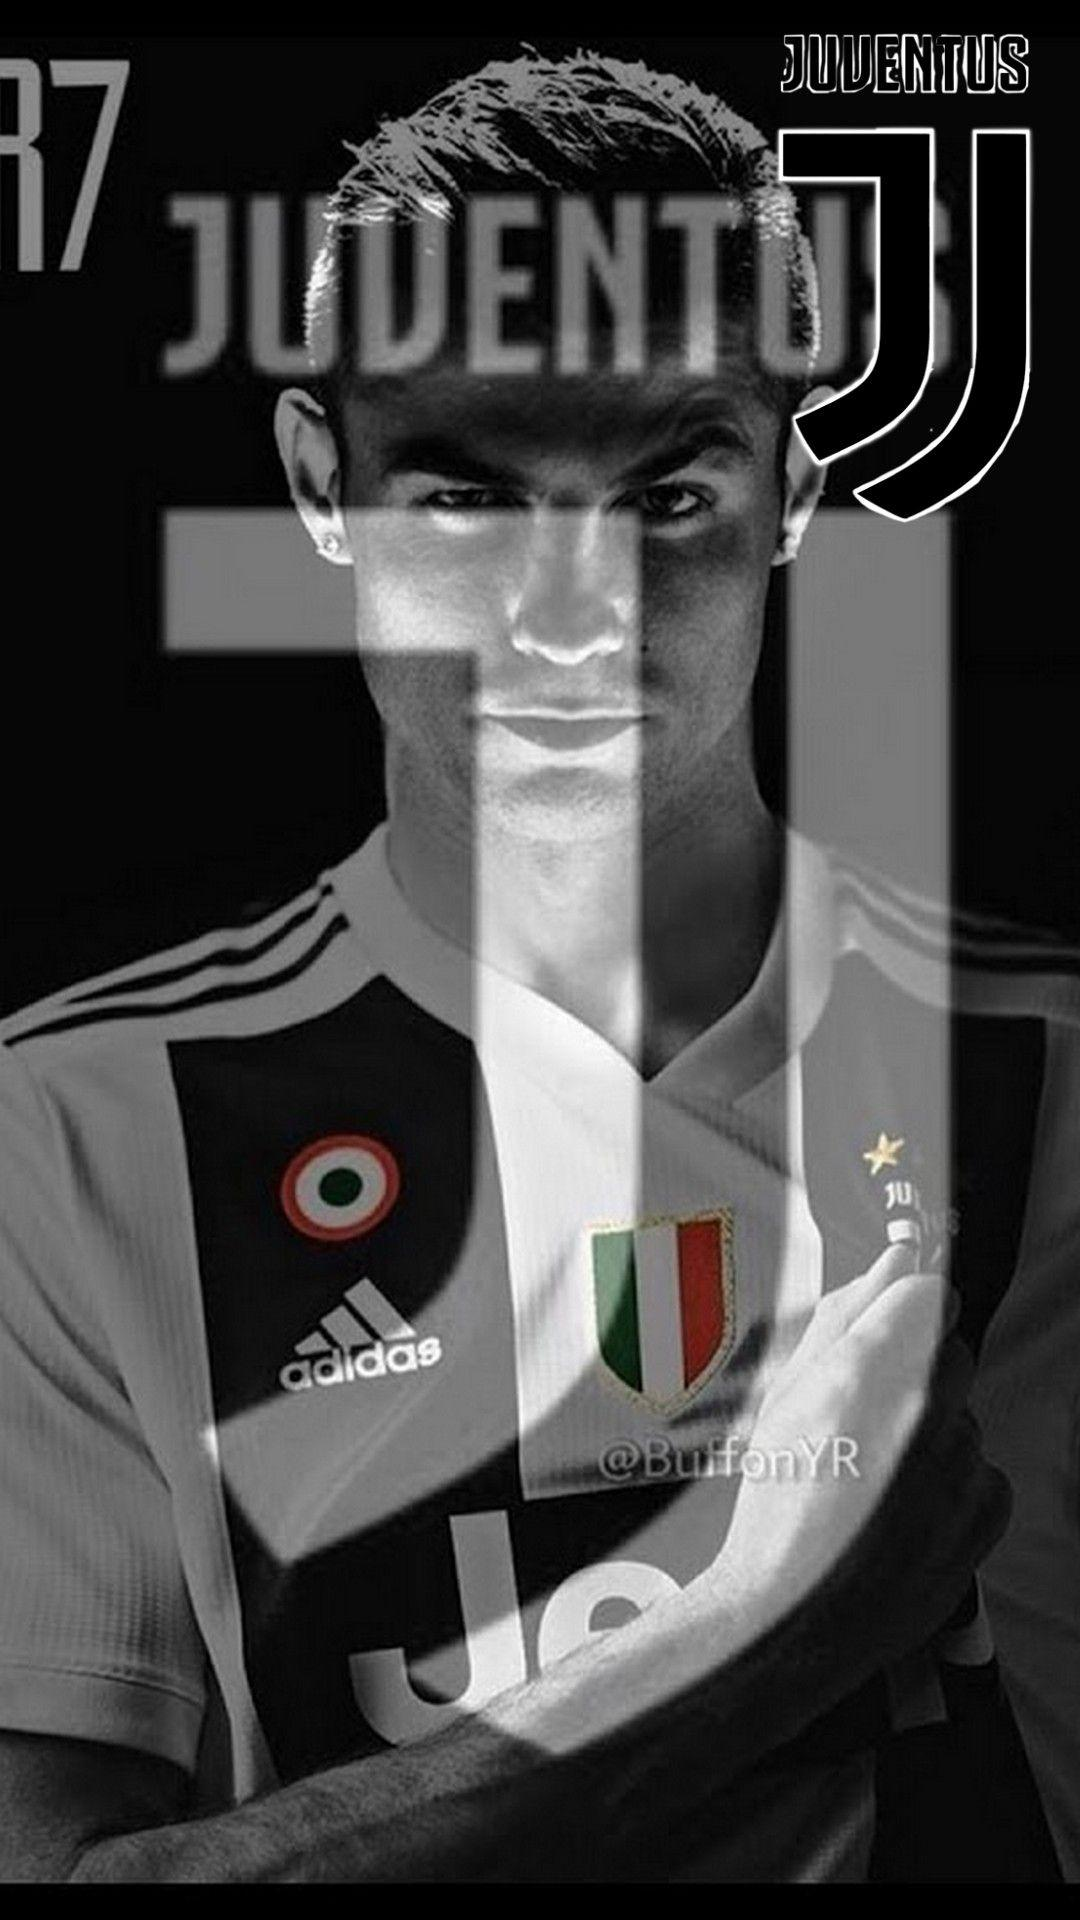 Ronaldo Juventus Wallpapers Wallpaper Cave